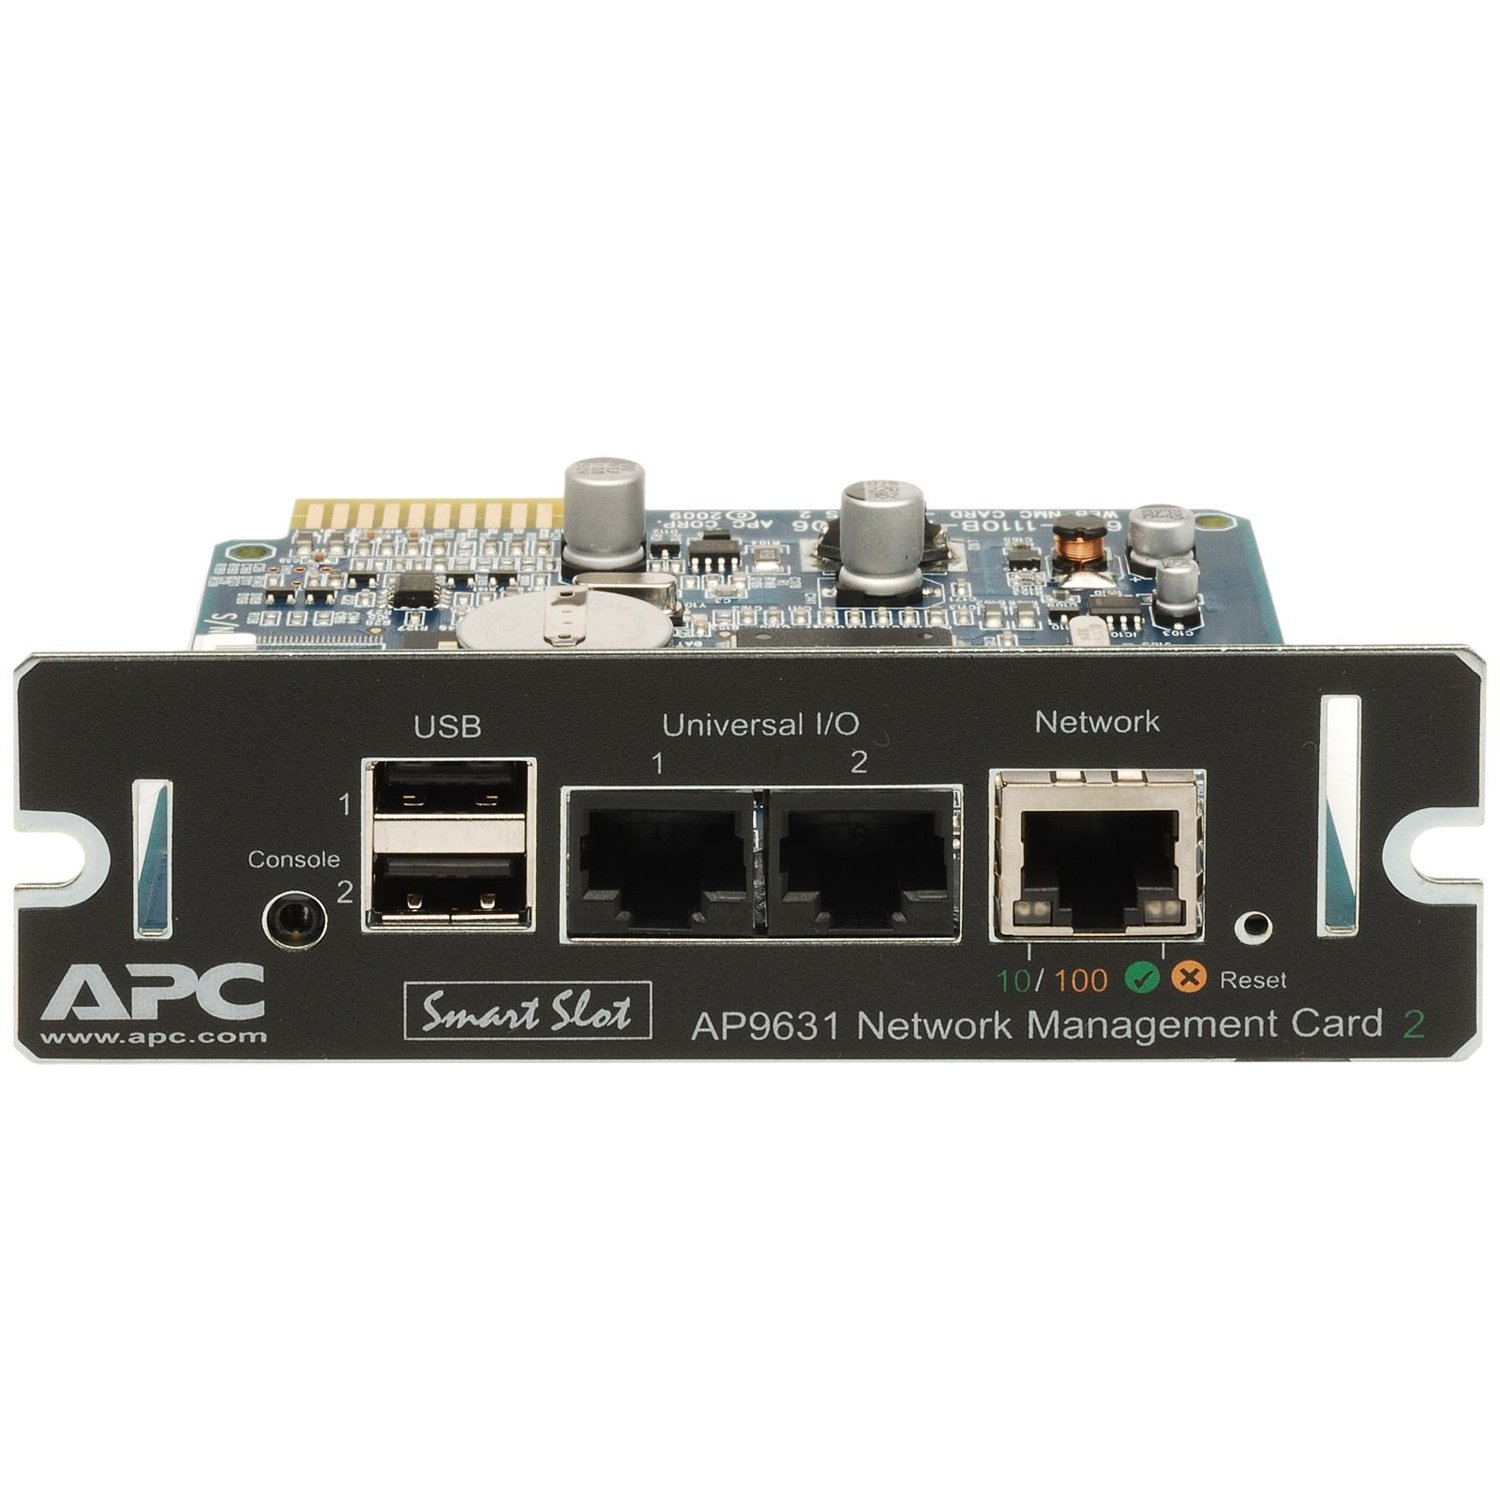 09f54563ddb Amazon.com: APC AP9631 UPS Network Management Card 2 with Environmental  Monitoring: Home Audio & Theater